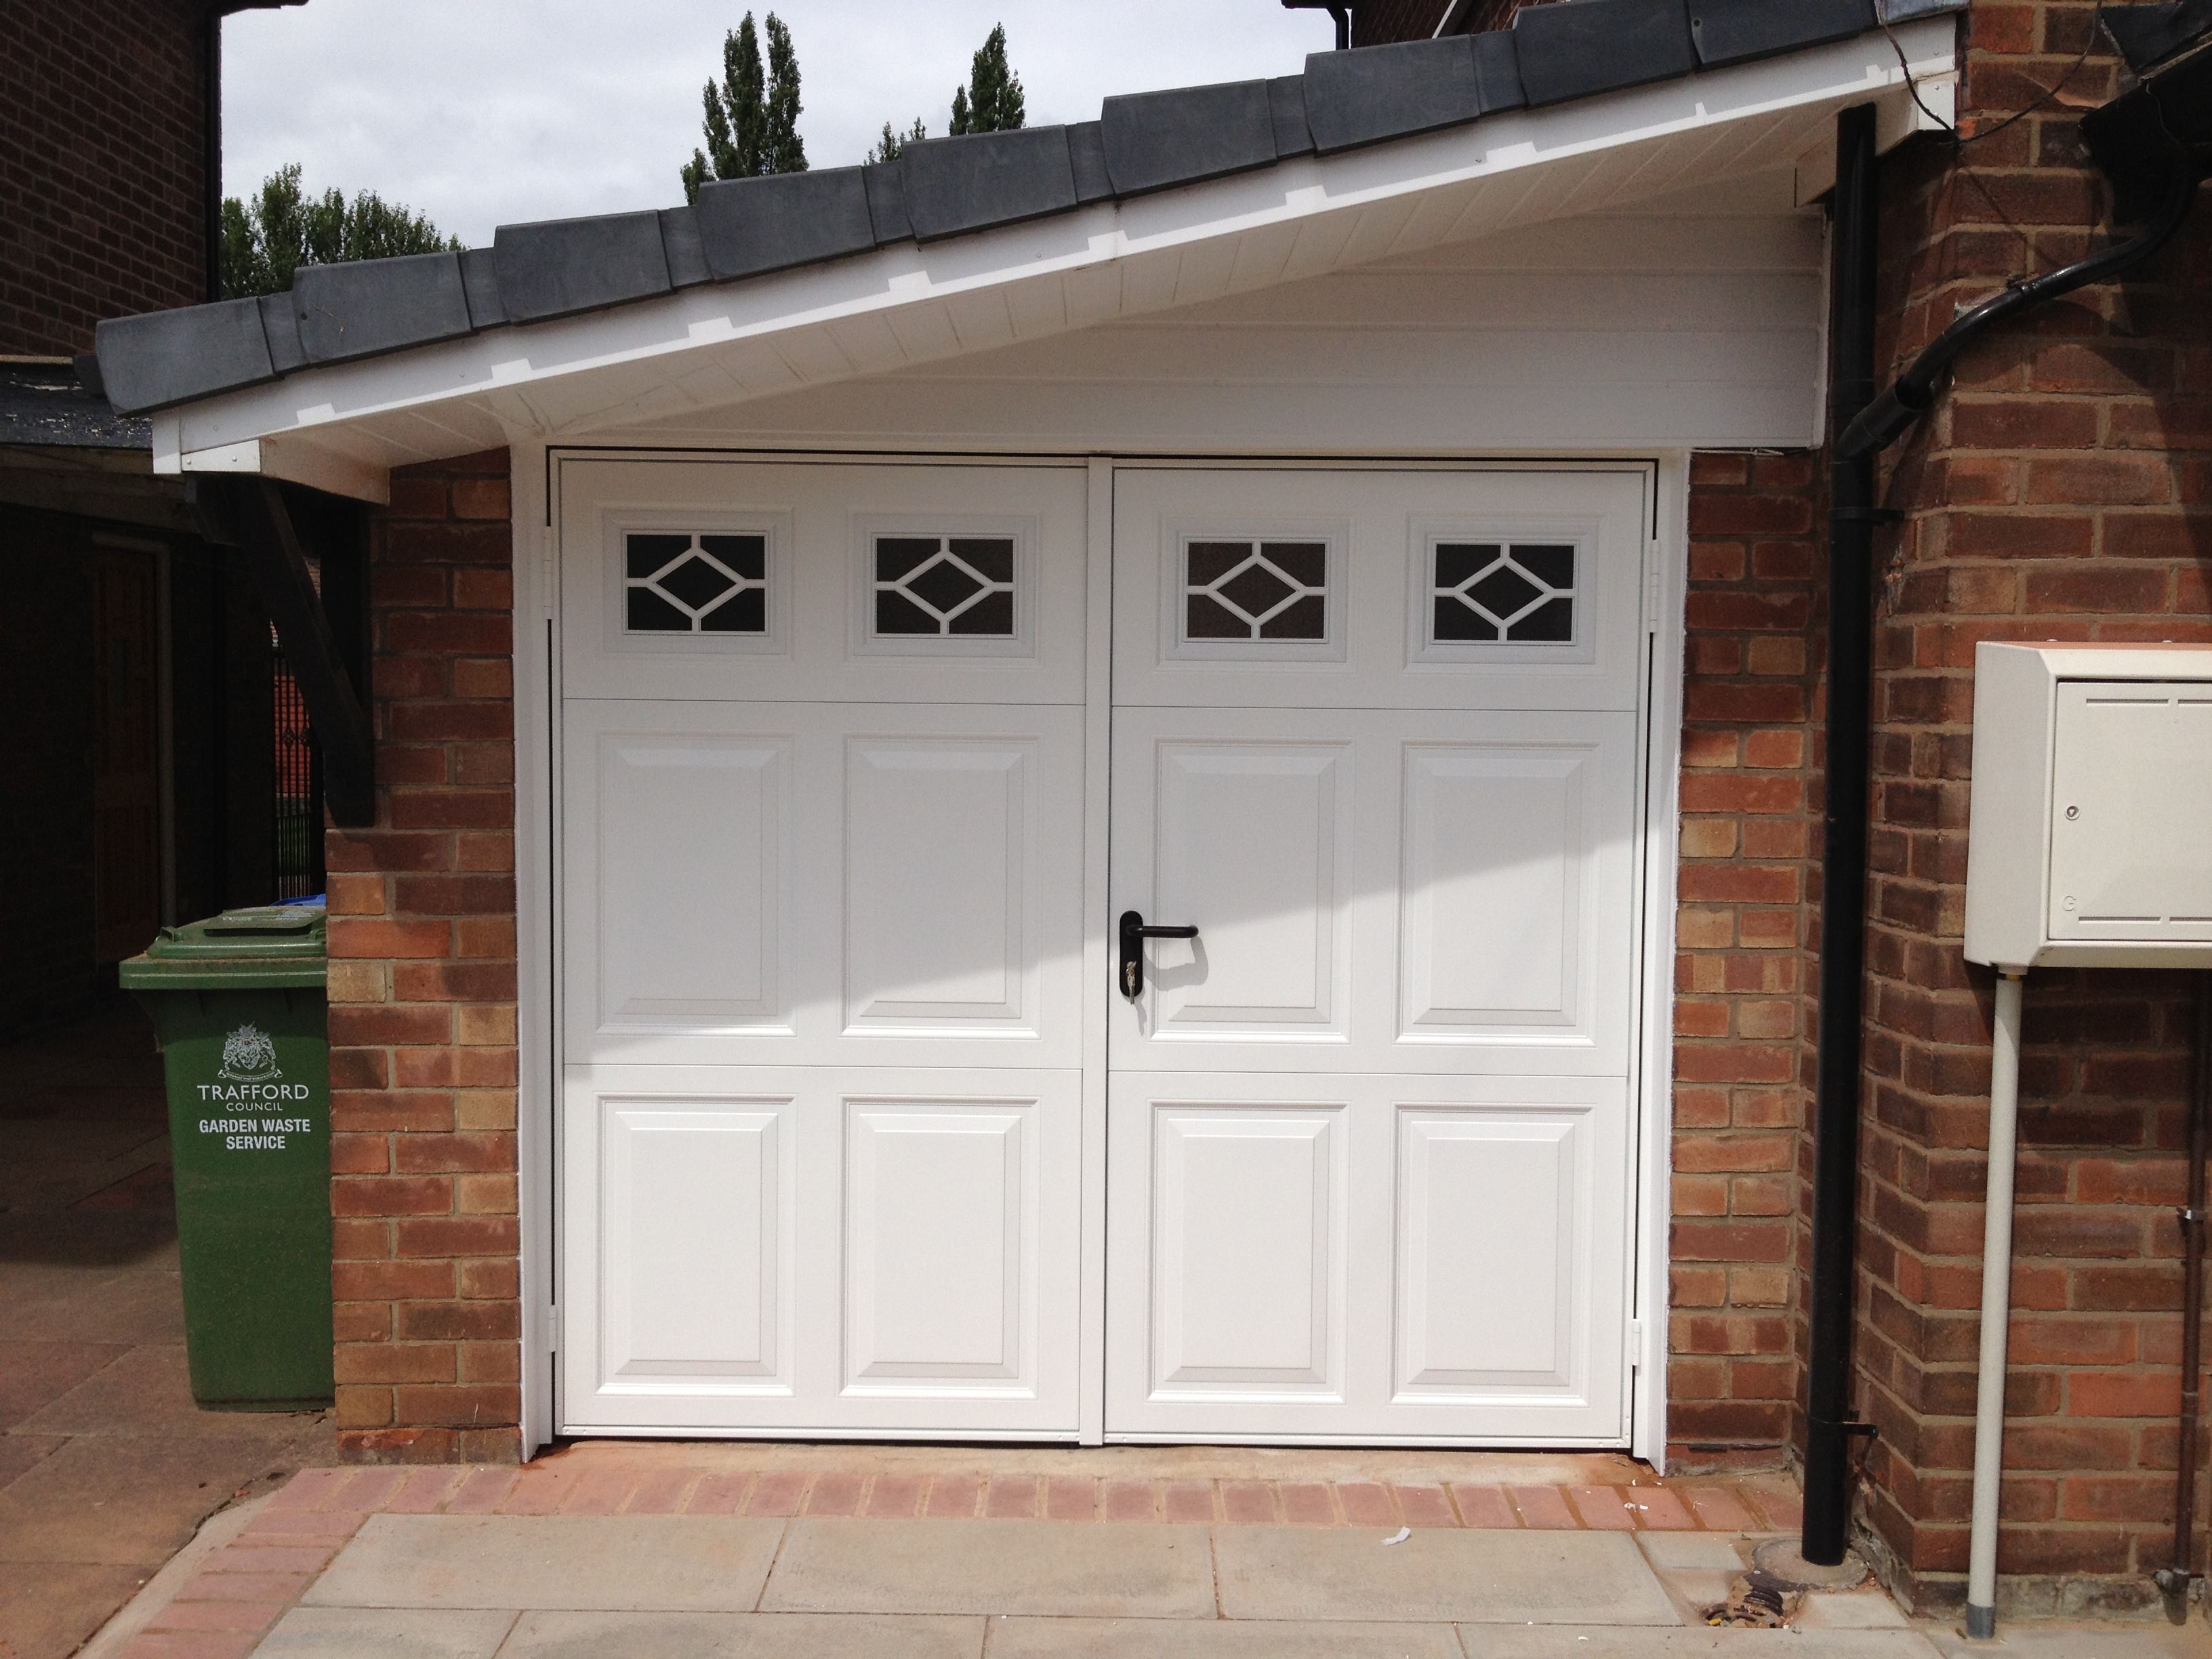 Garage doors seven essential tips for improving security for Garage side entry door